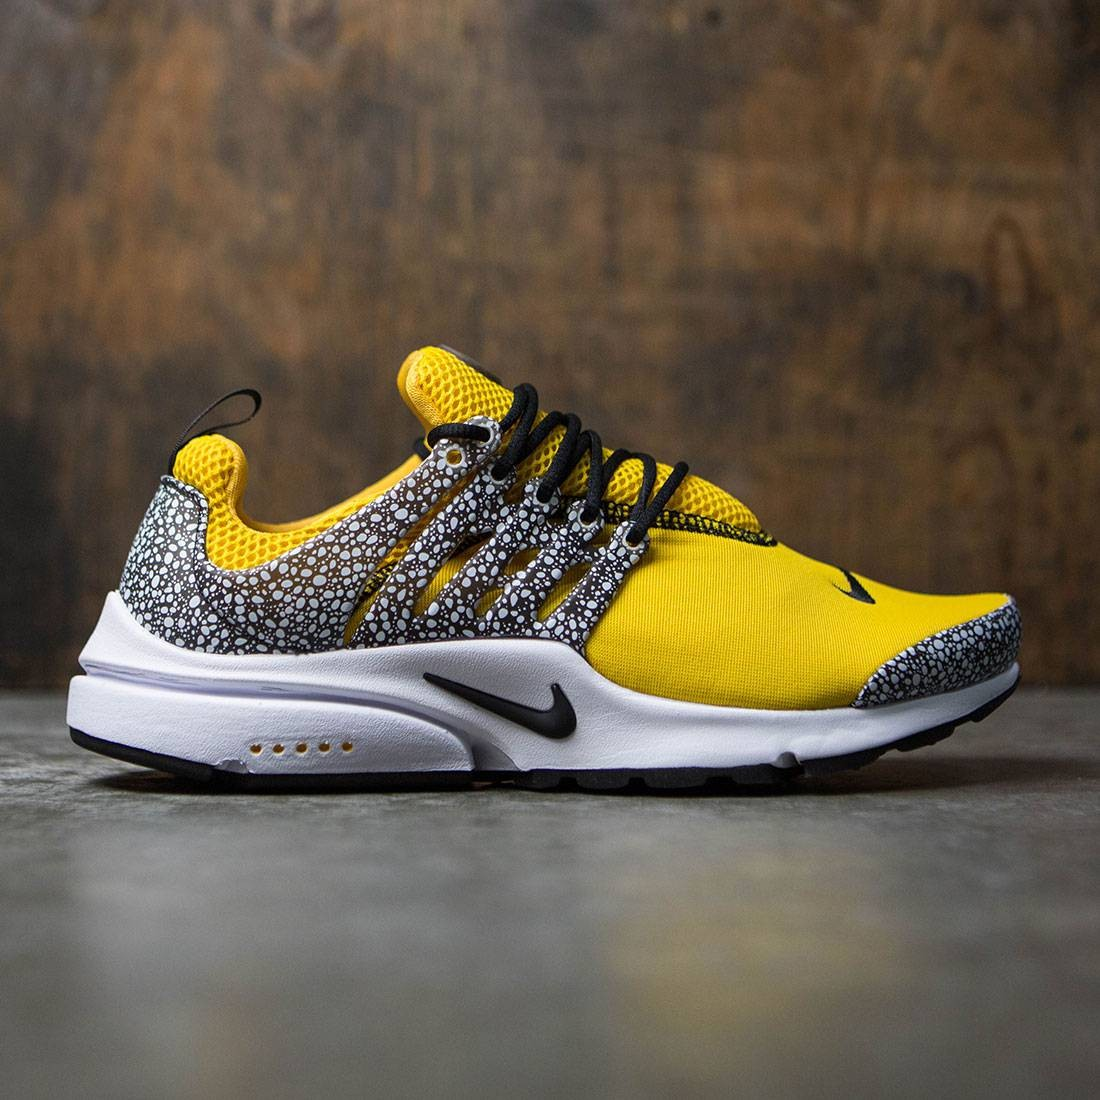 3a3b0968fc20 nike men air presto qs safari pack yellow university gold black white